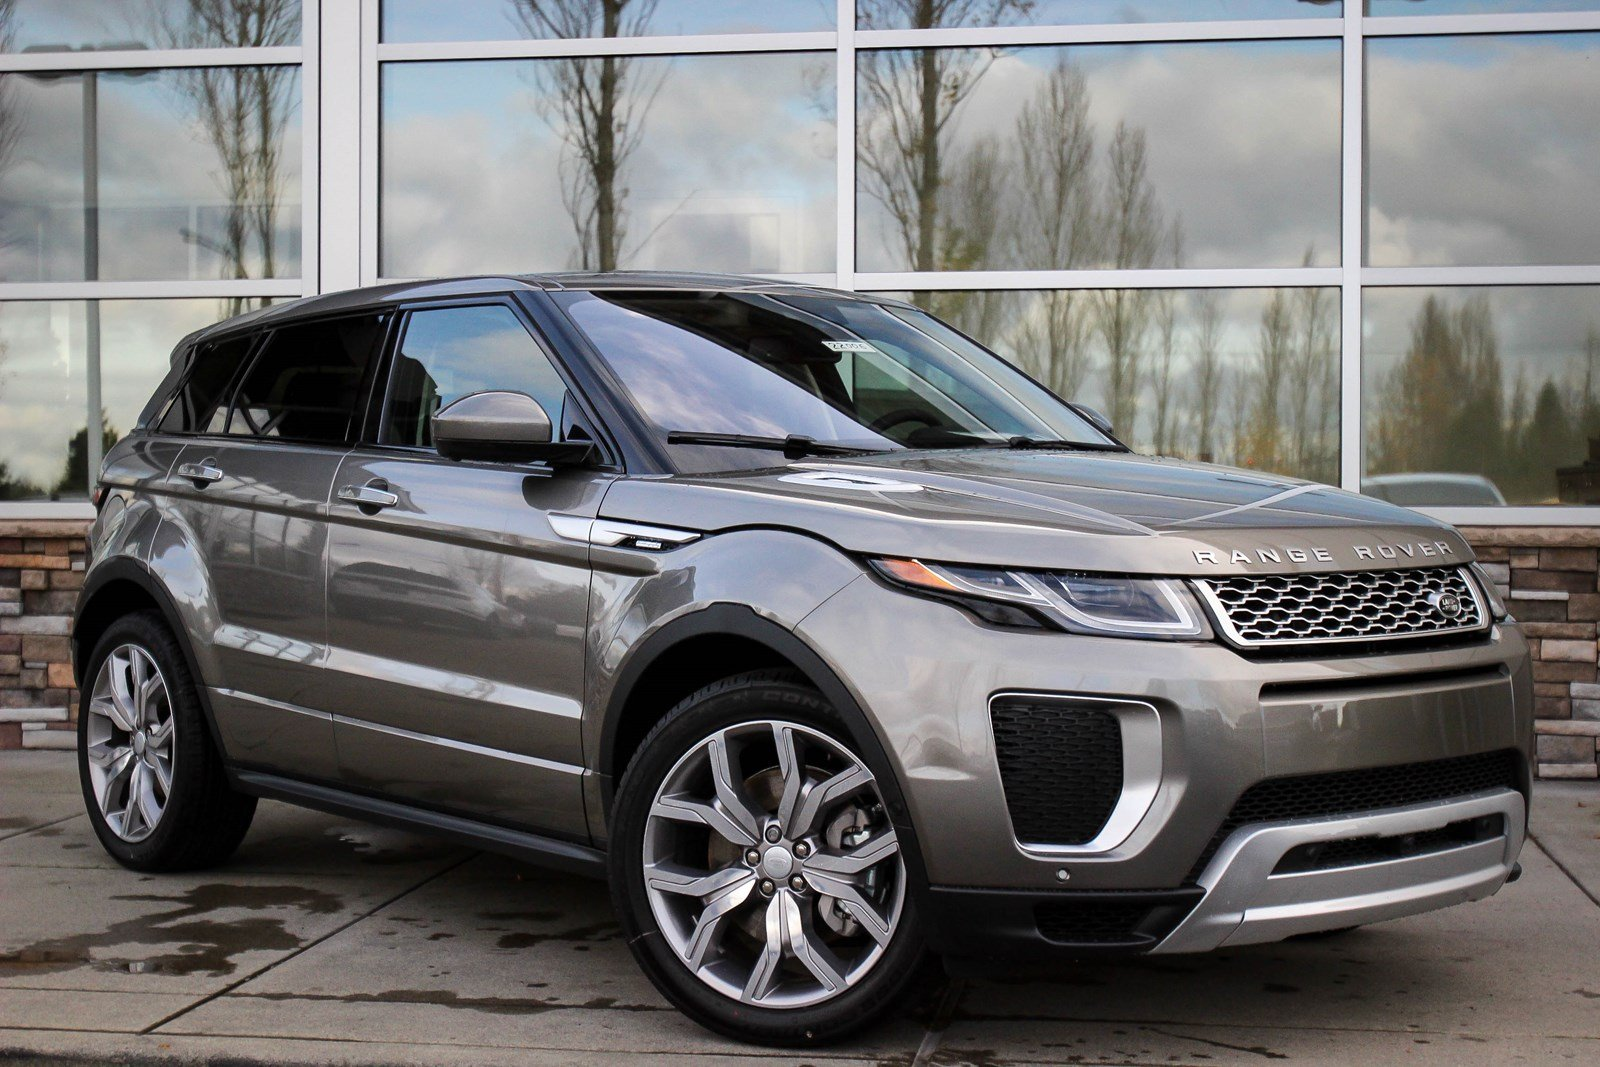 land rover range rover evoque 2018 new car release date and review 2018 amanda felicia. Black Bedroom Furniture Sets. Home Design Ideas